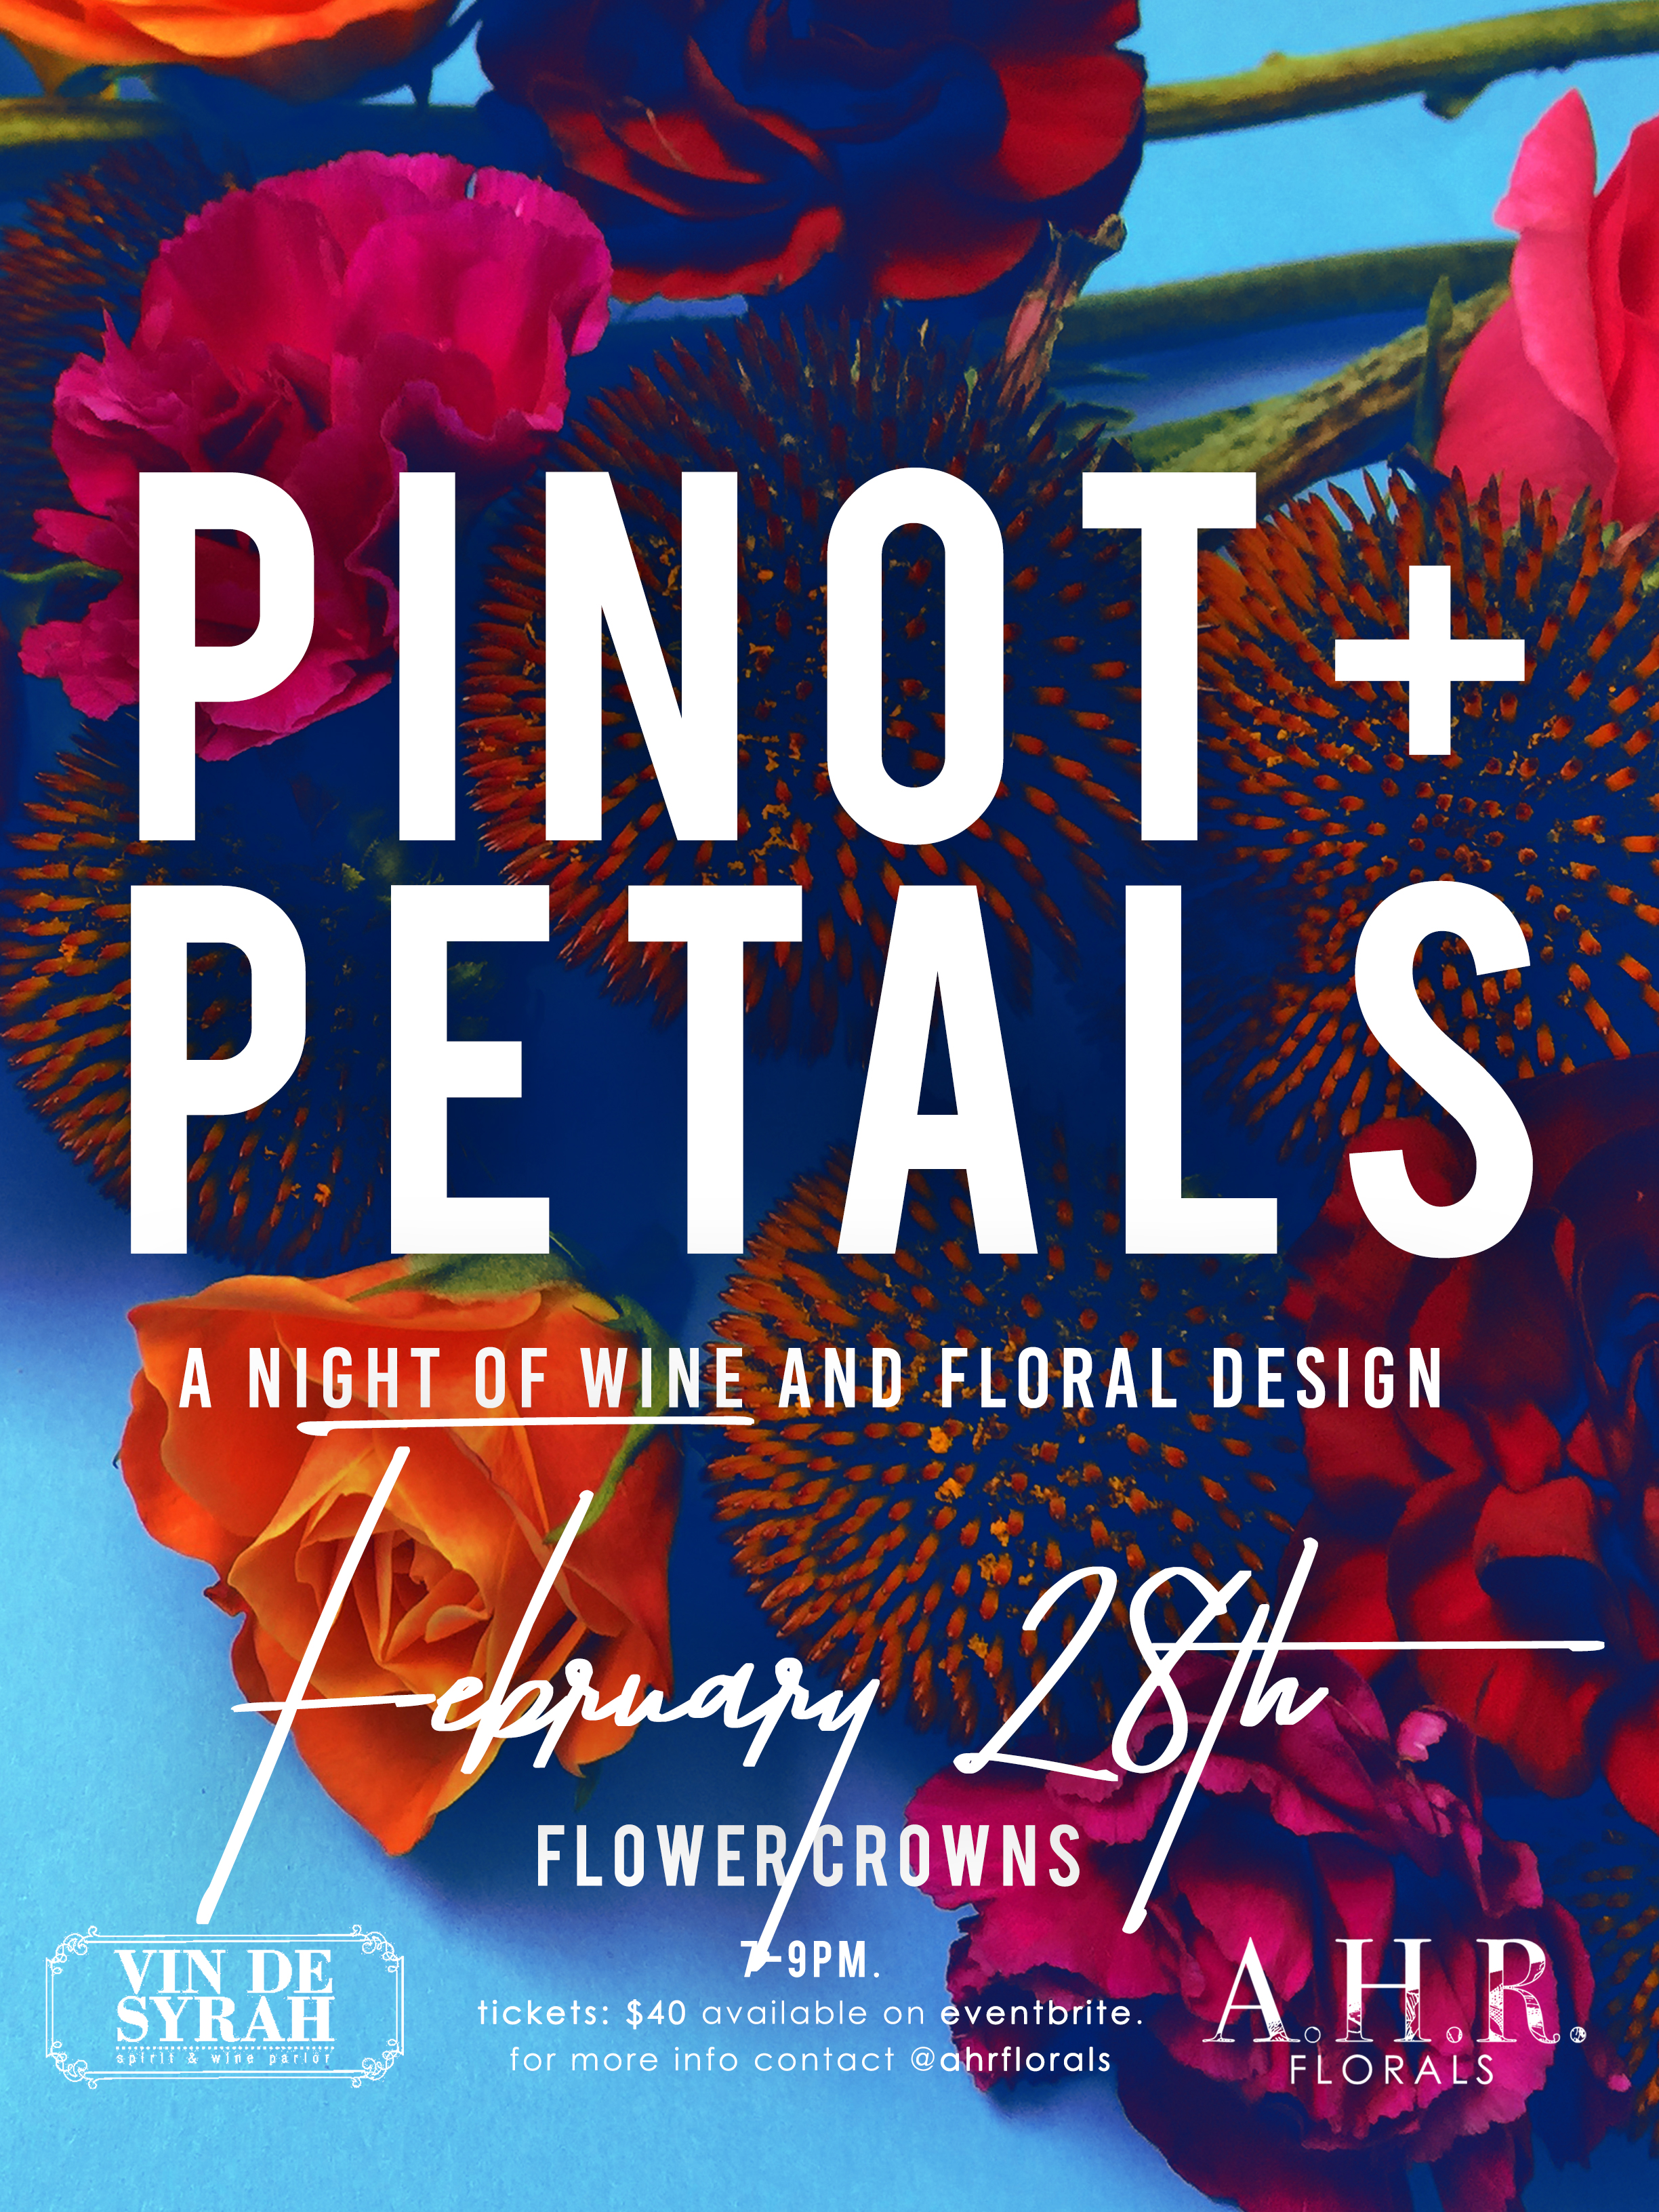 ahr-florals-pinot-and-petals-wine-and-floral-design-february2.jpg